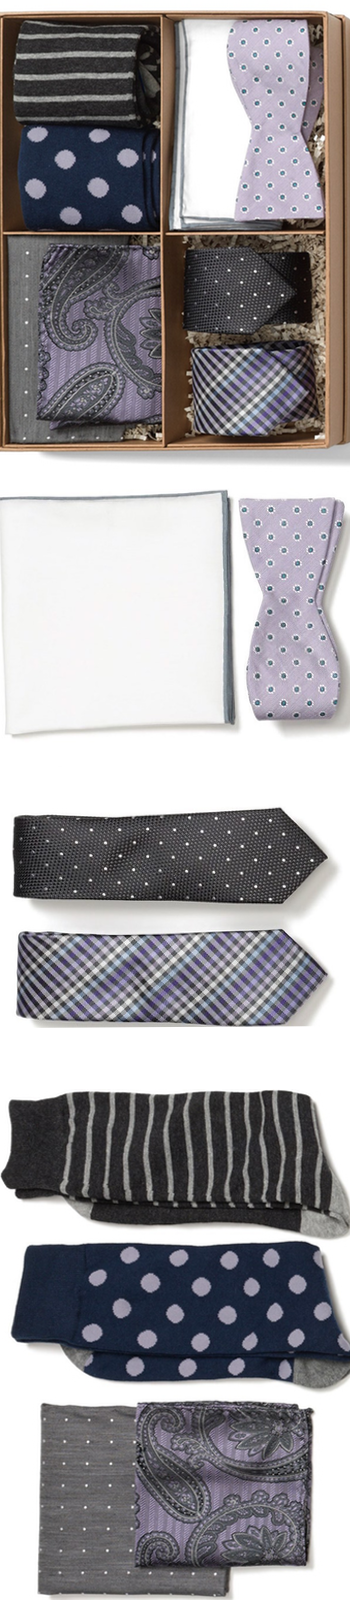 The Tie Bar Large Style Box Nordstrom Lavender/Grey